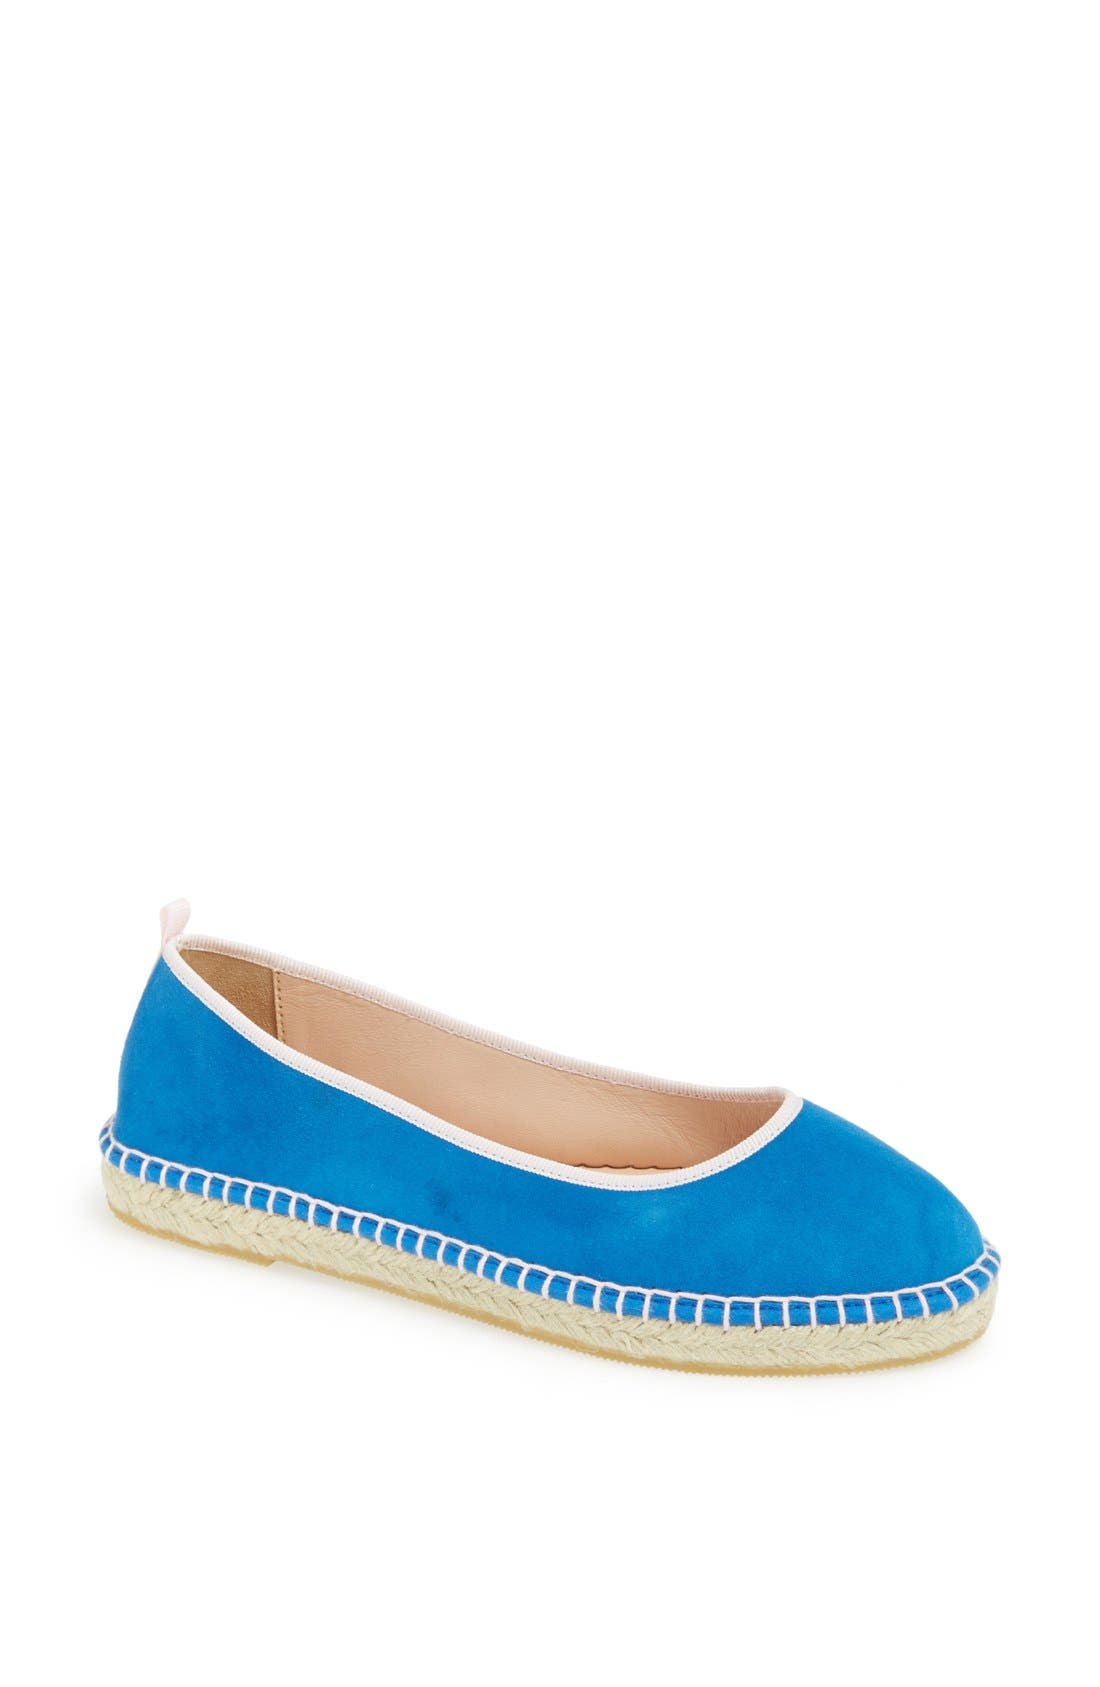 Alternate Image 1 Selected - SJP 'Billie' Suede Flat (Nordstrom Exclusive)